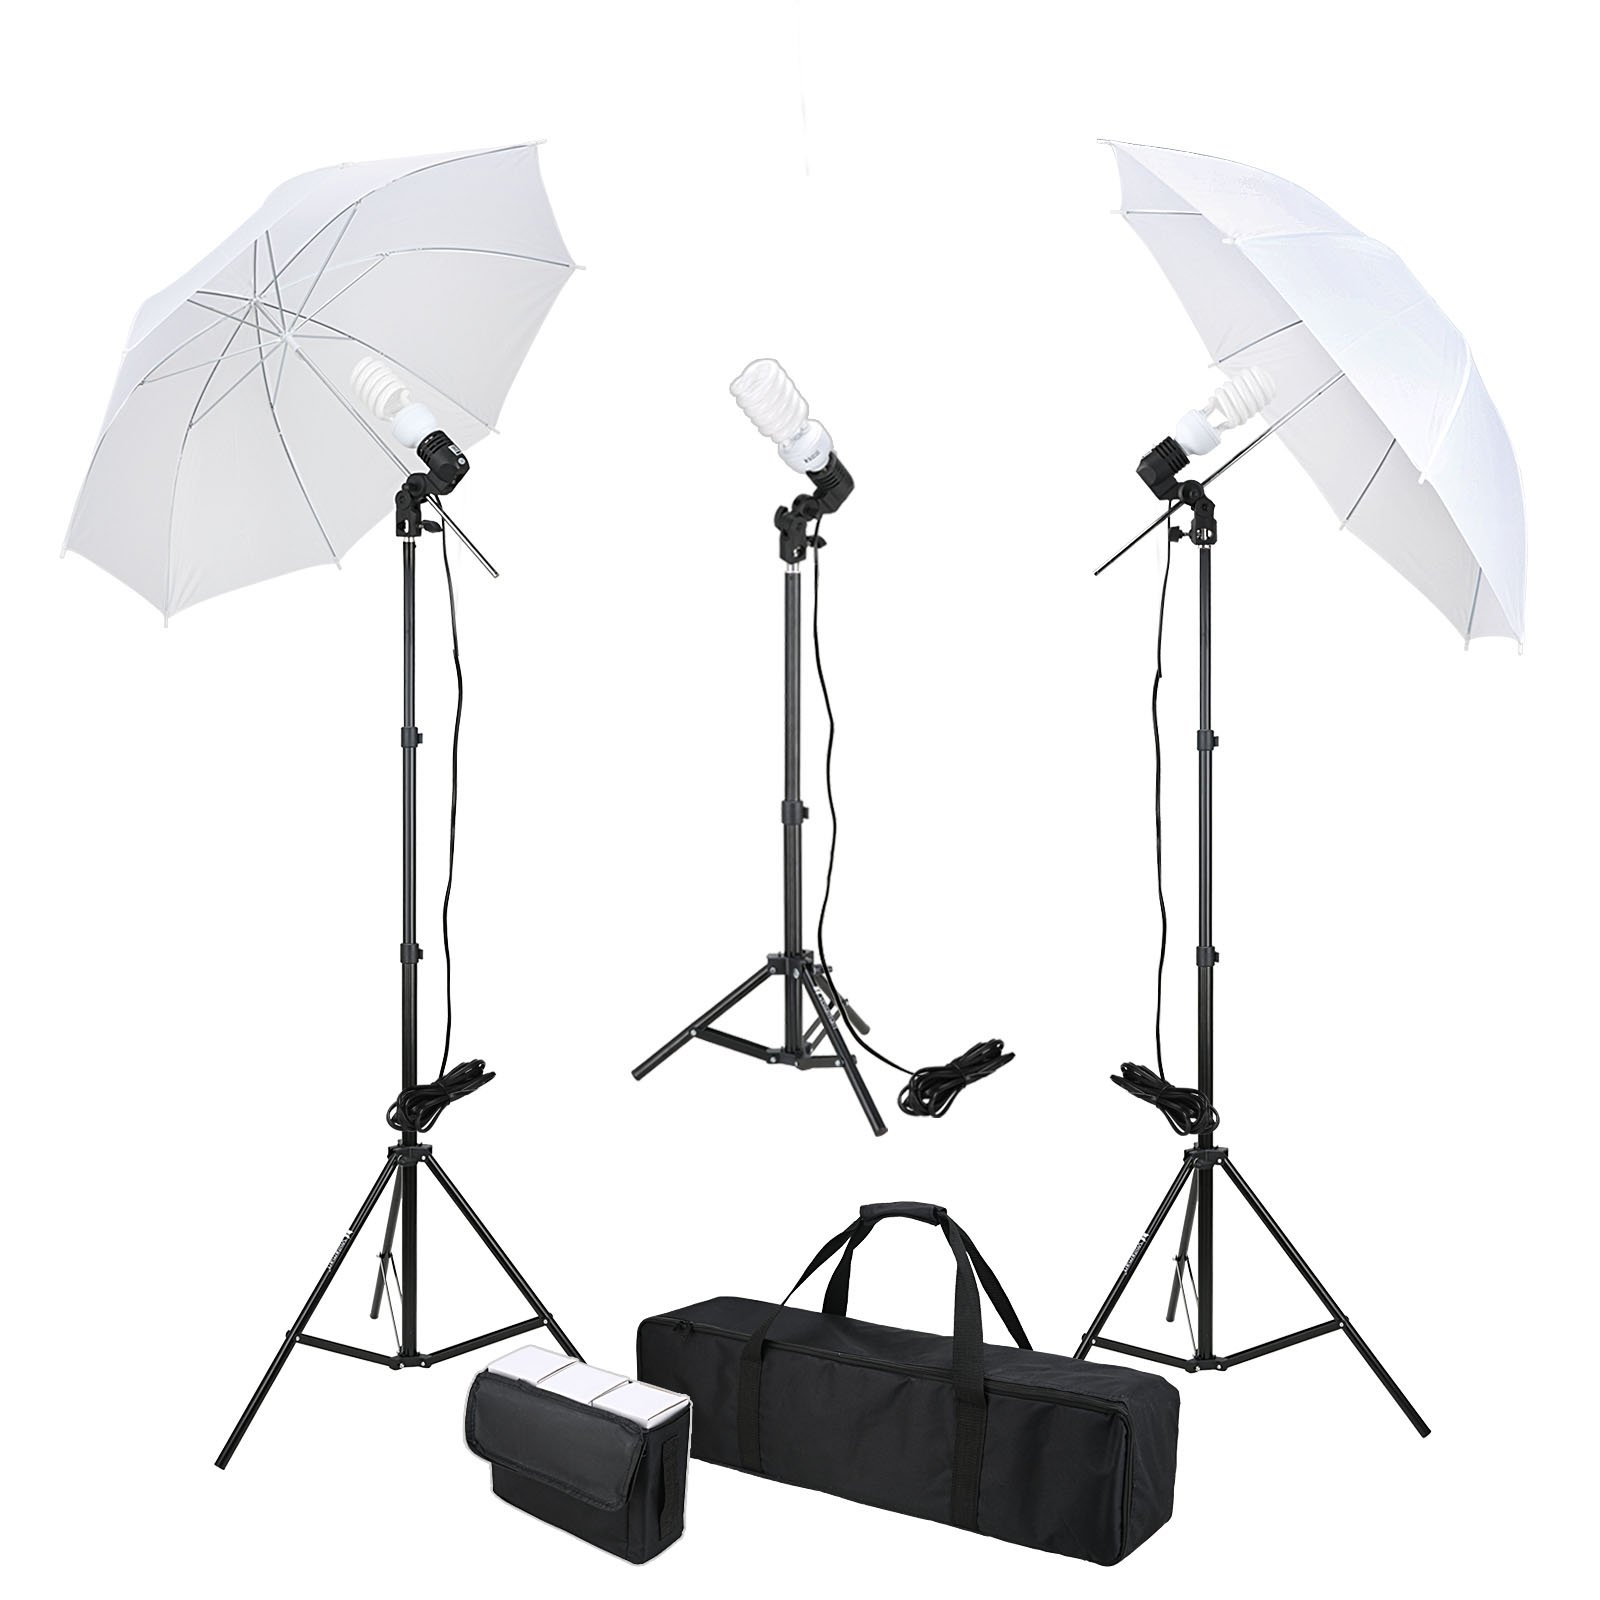 Excellent beginners lighting kit at an unbeatable price.